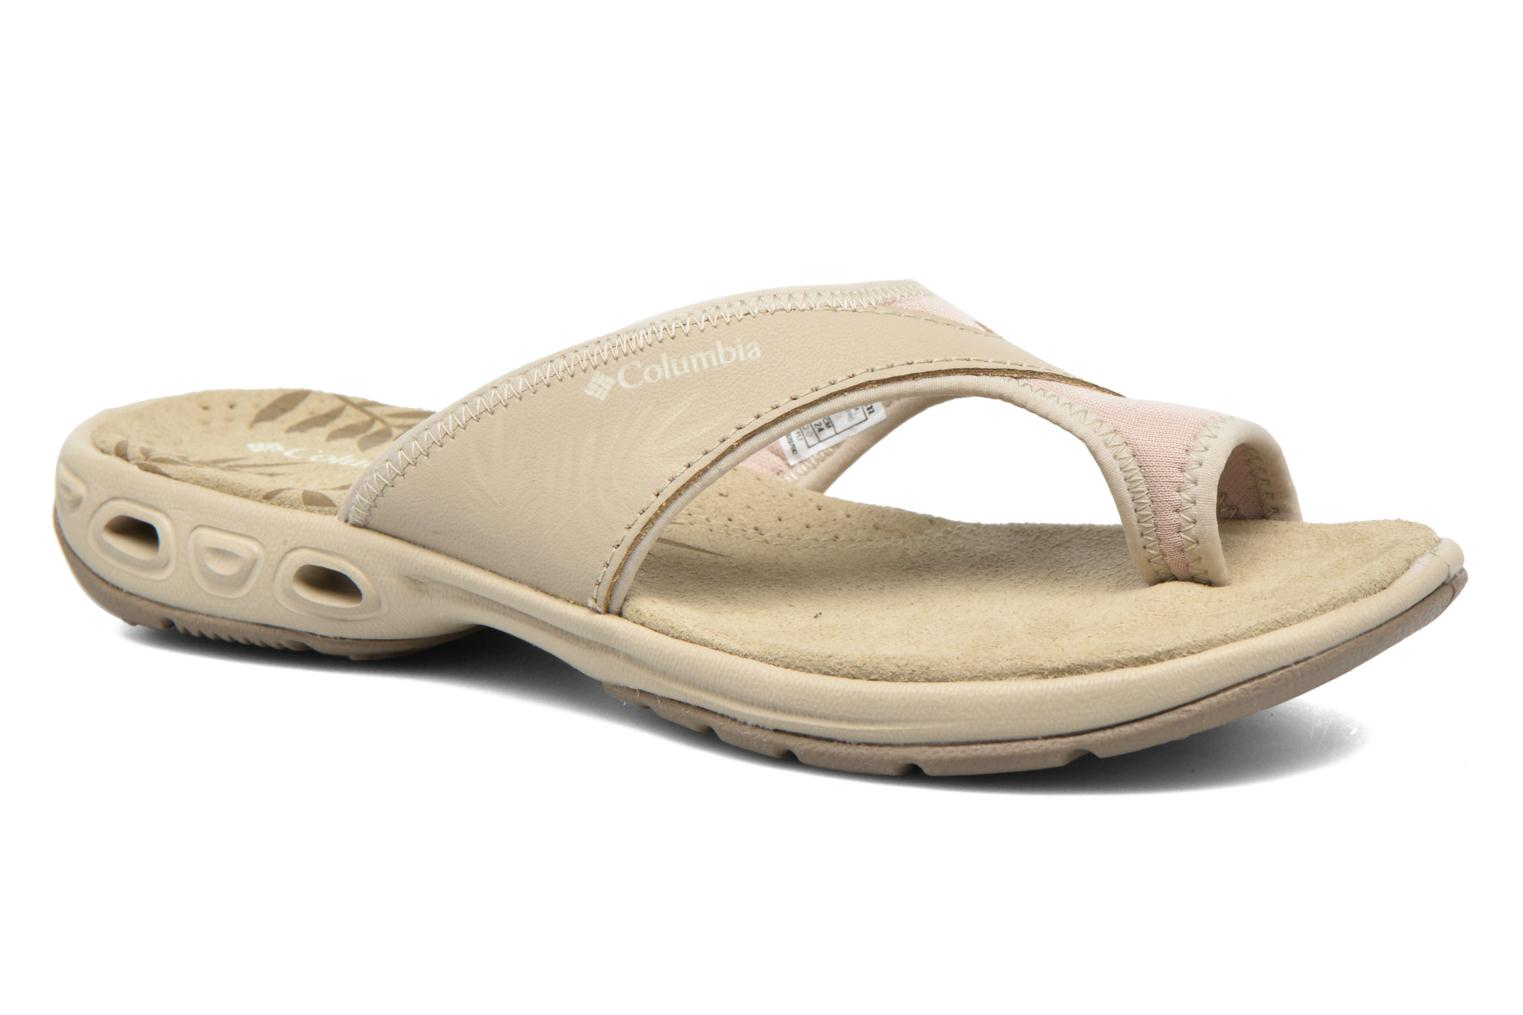 Marques Chaussure femme Columbia femme Kea Vent Fossil